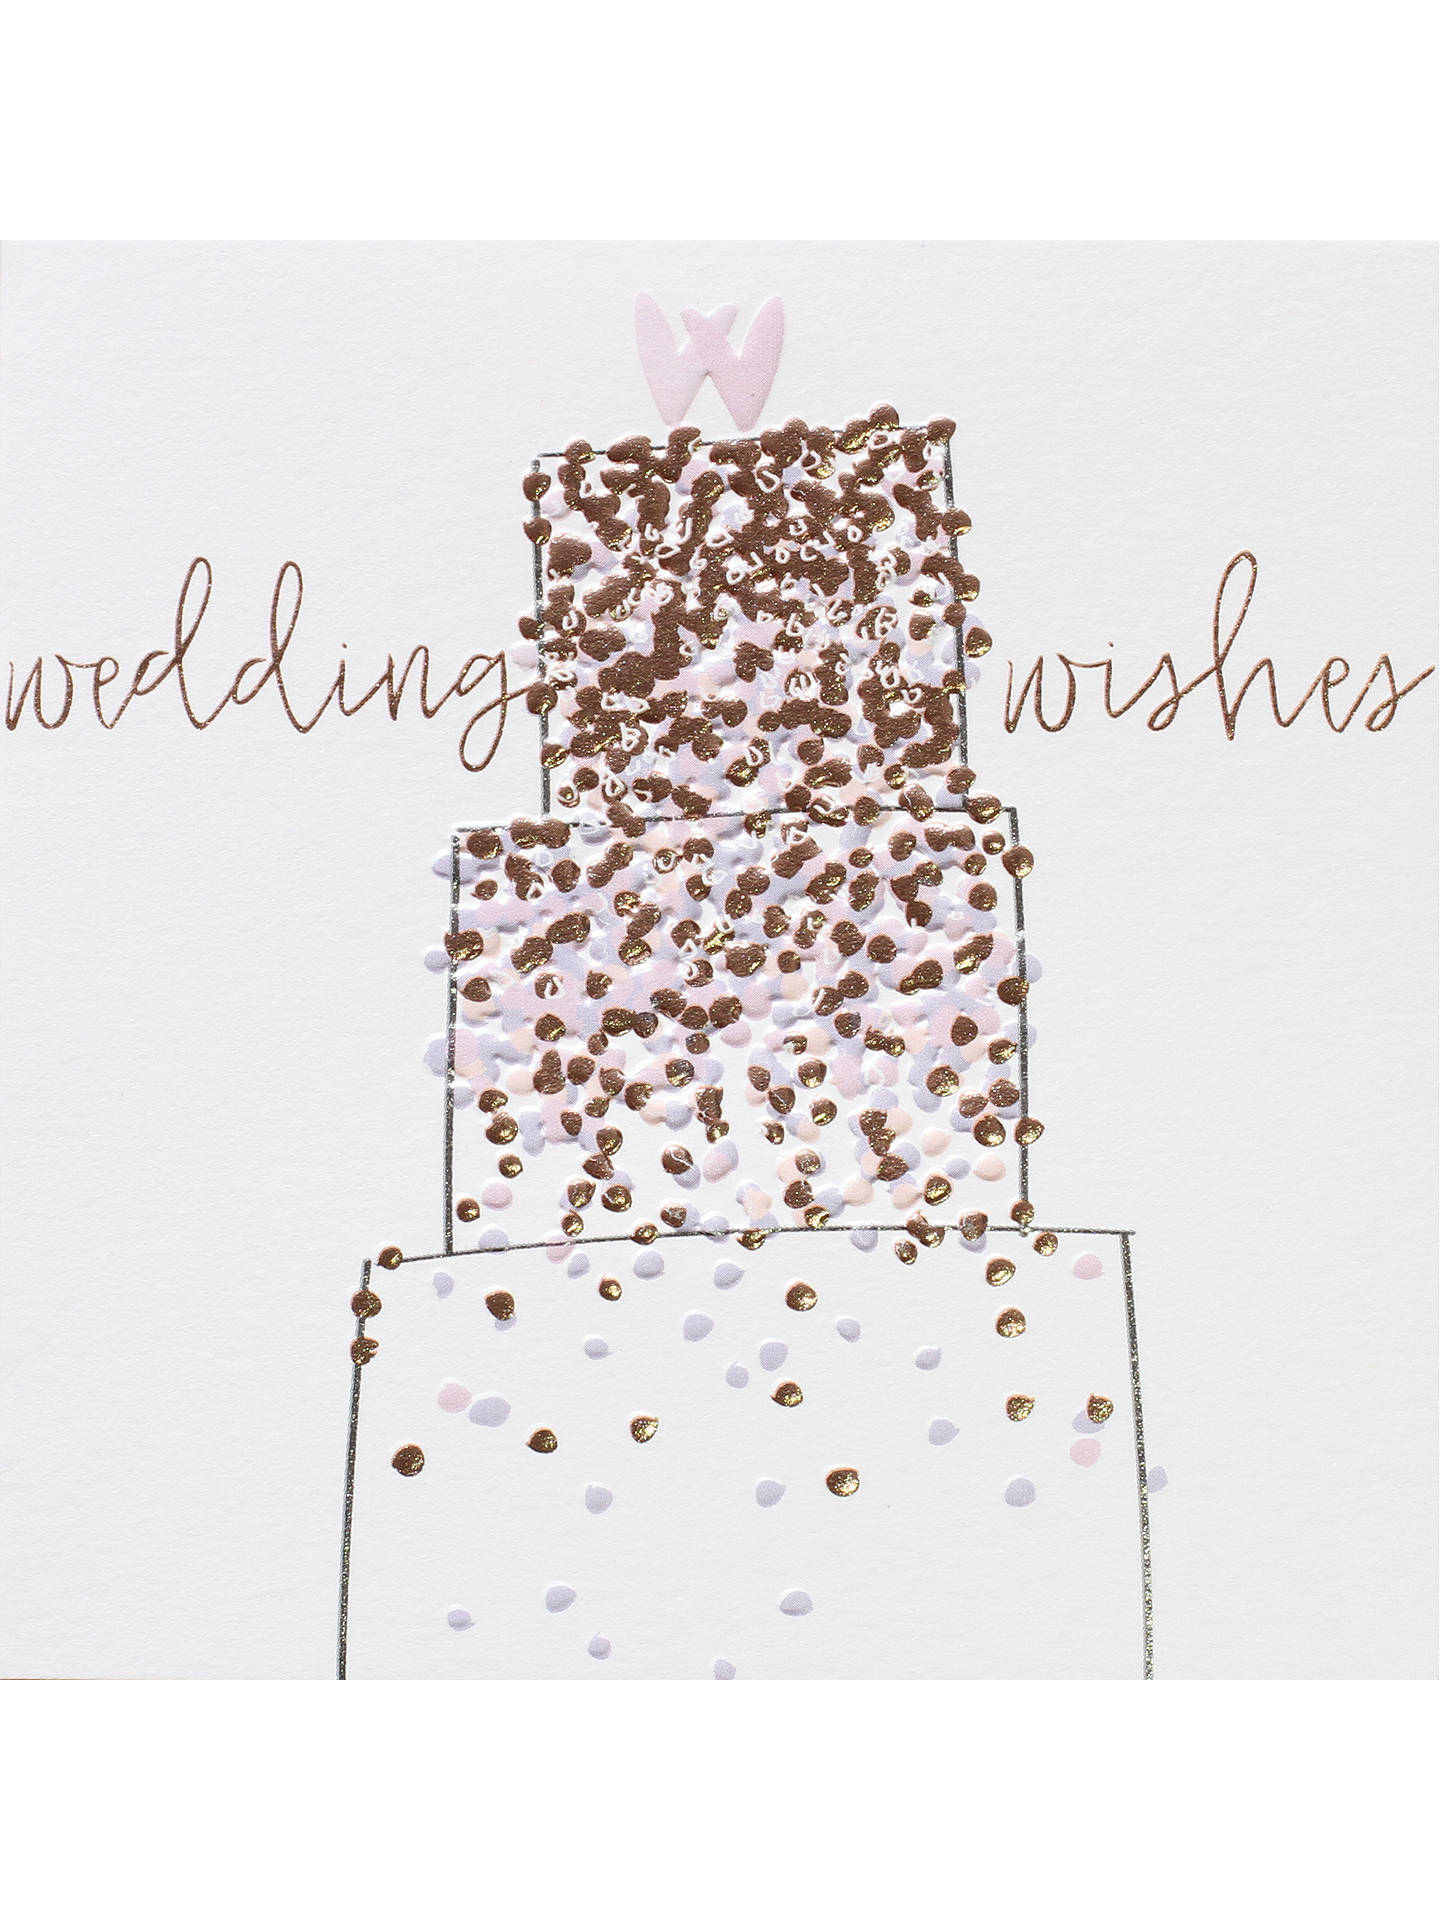 bellybutton bubble cake wedding wishes card